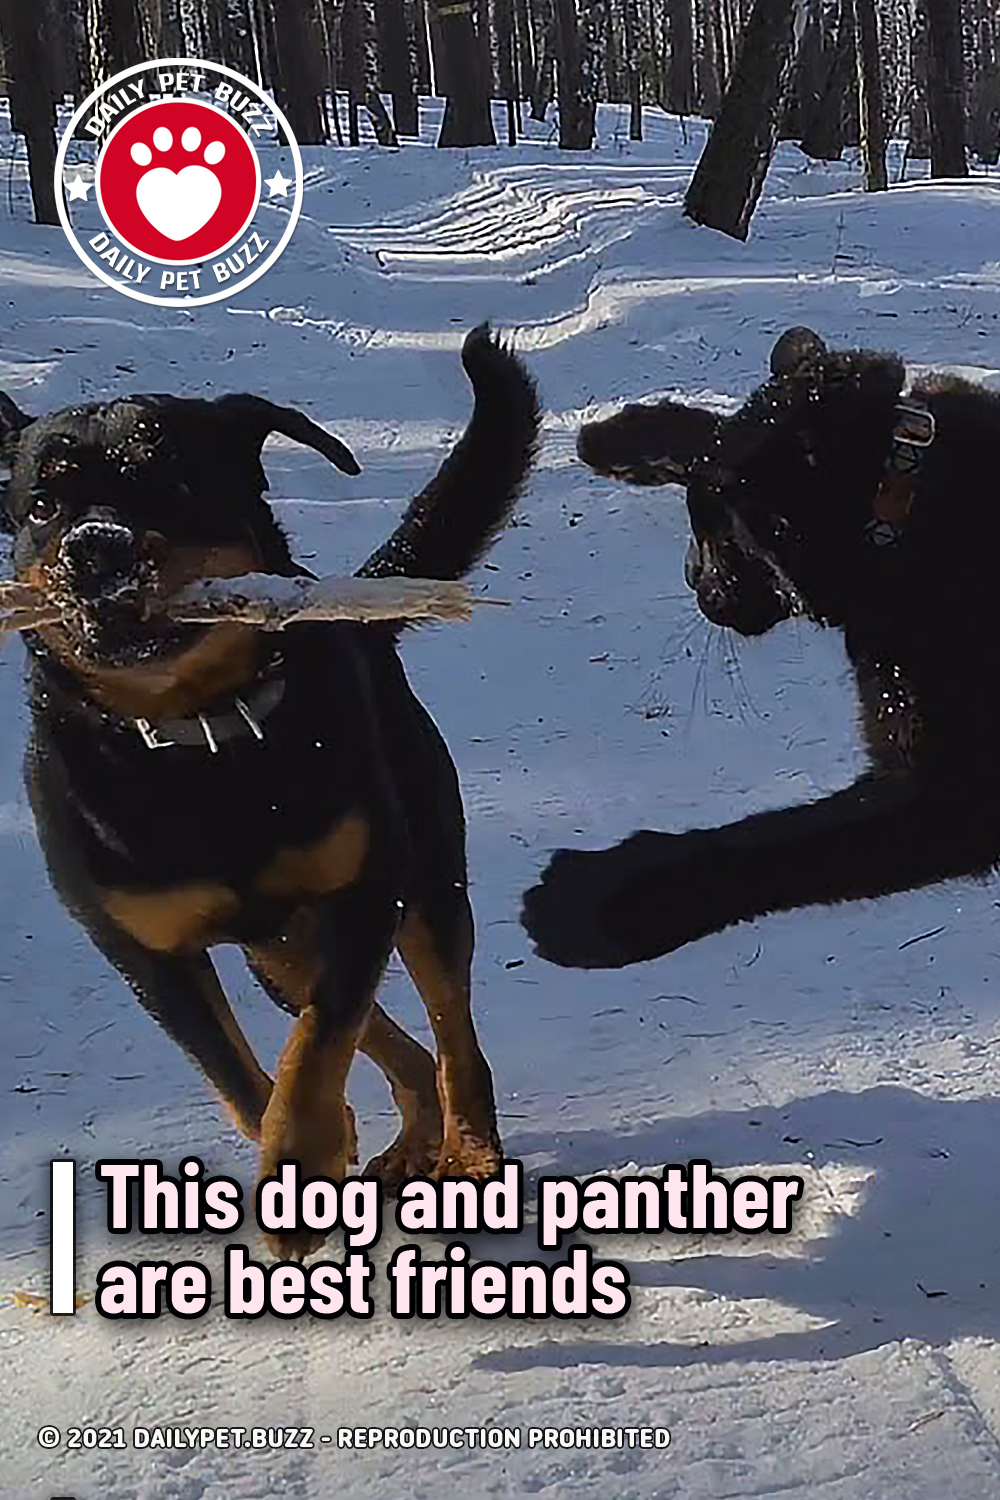 This dog and panther are best friends